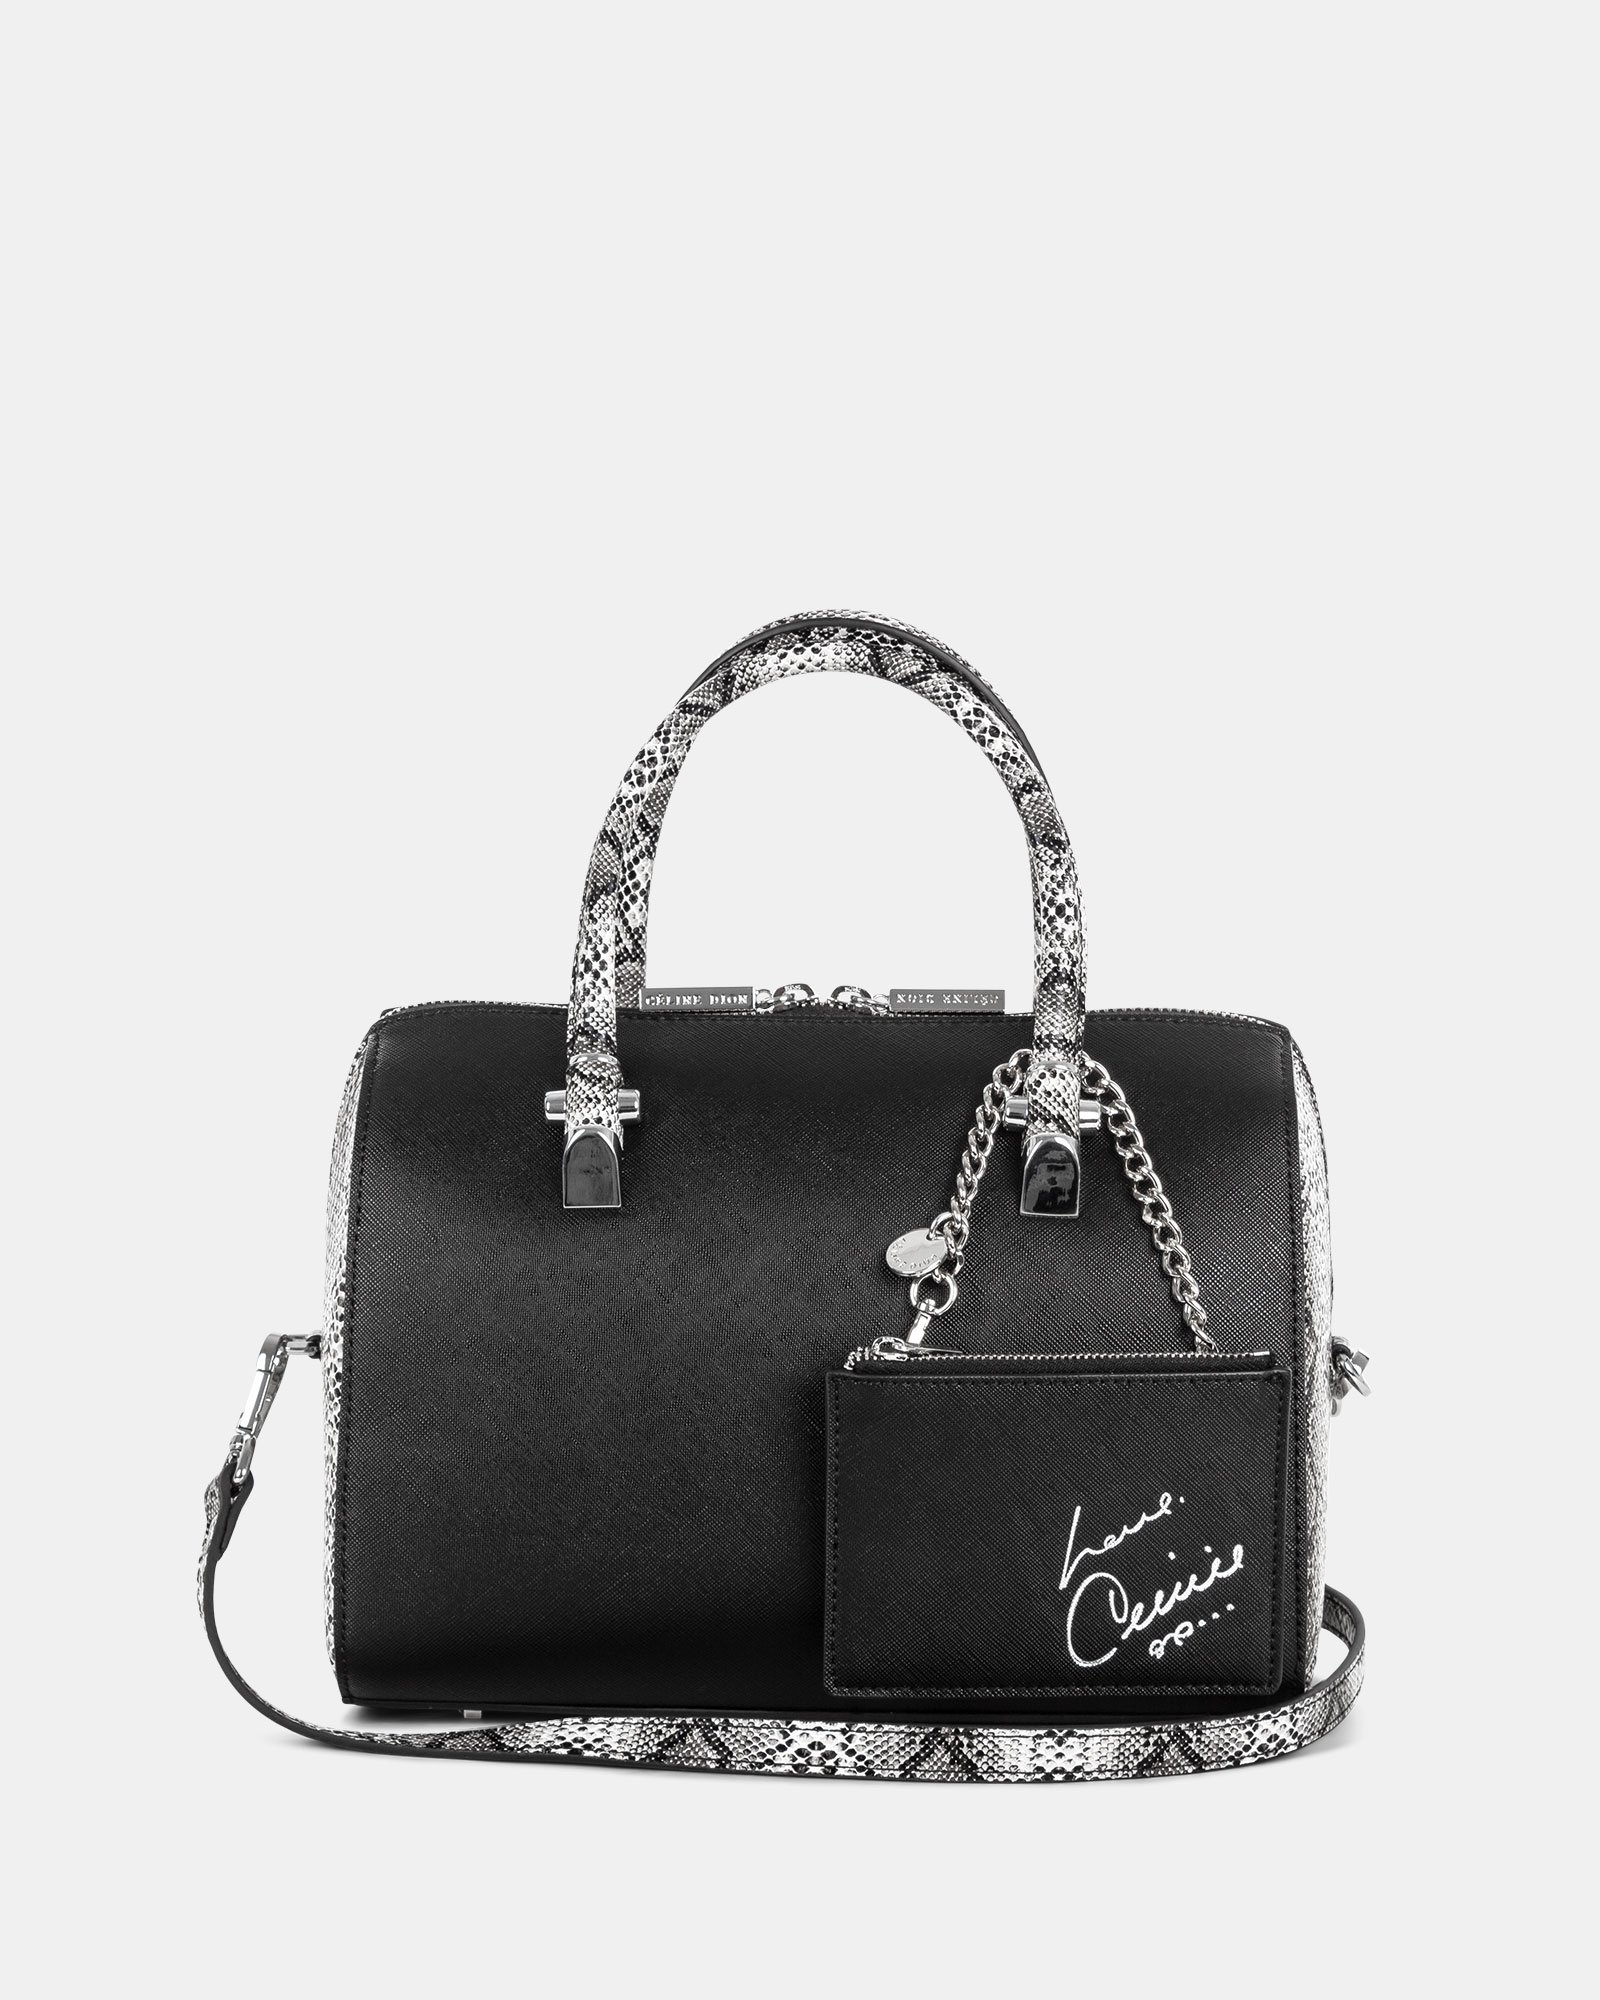 Duo - Satchel bowler bag with Adjustable and detachable crossbody strap - Black/Snake - Céline Dion - Zoom